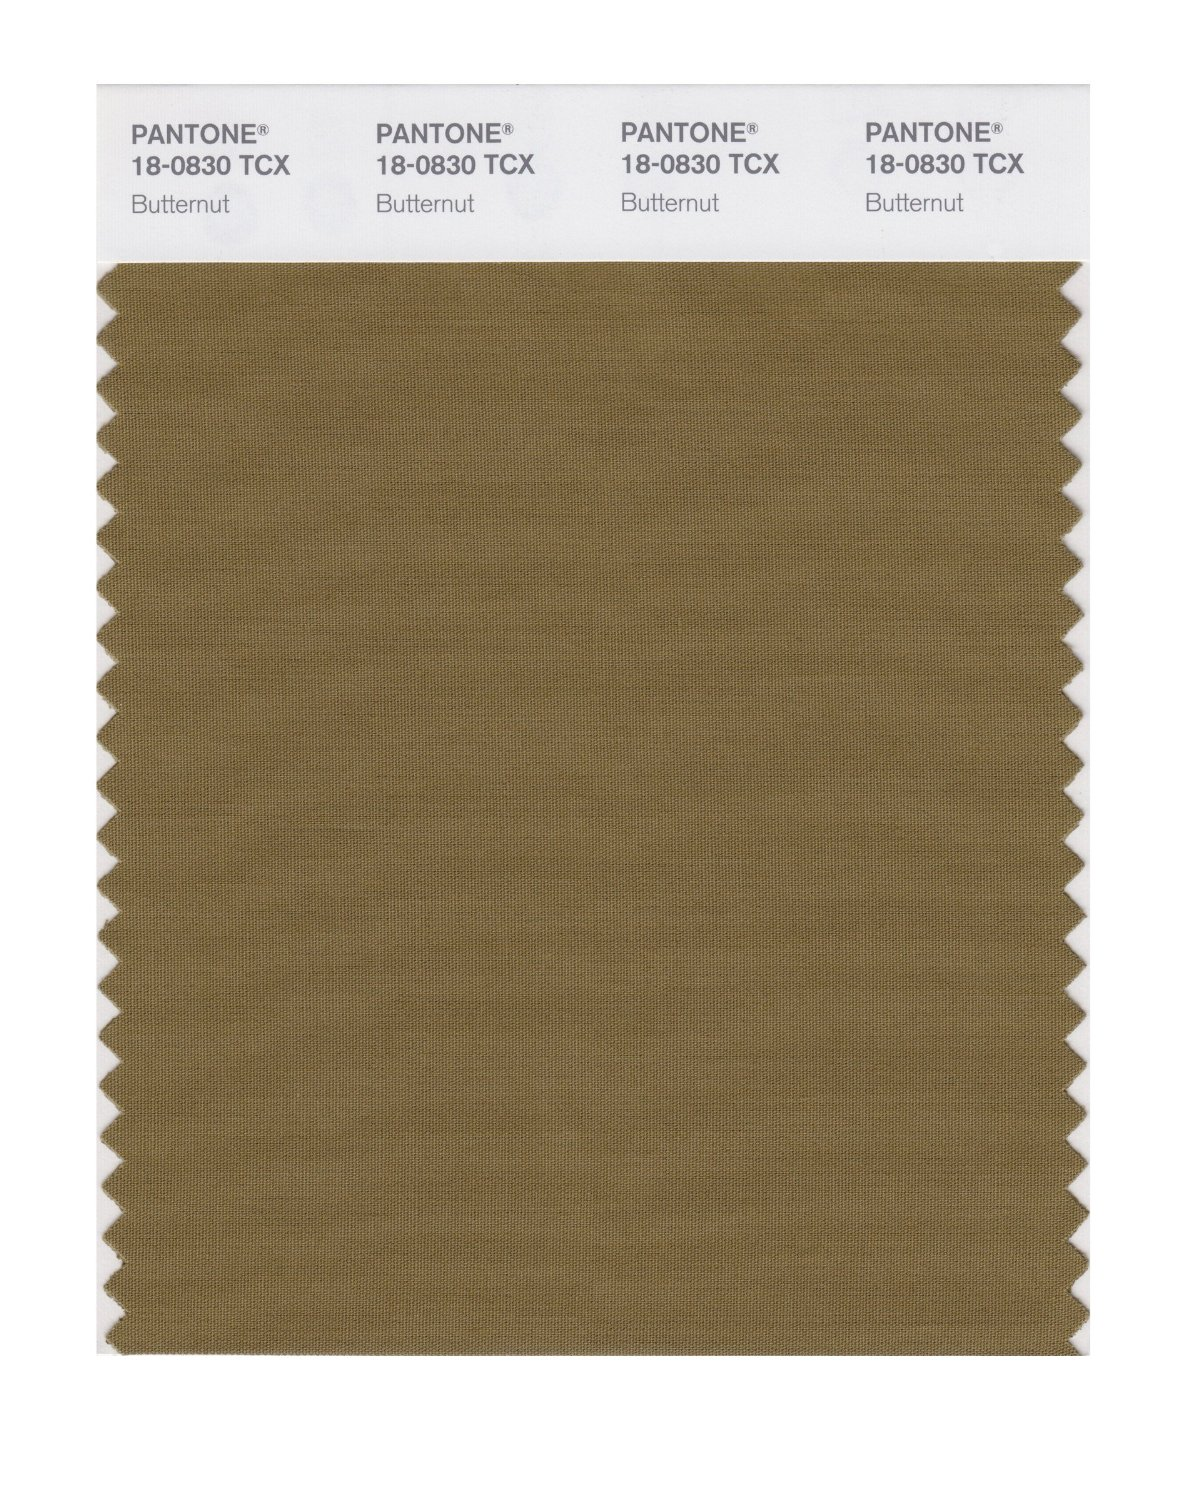 Pantone Smart Swatch 18-0830 Butternut